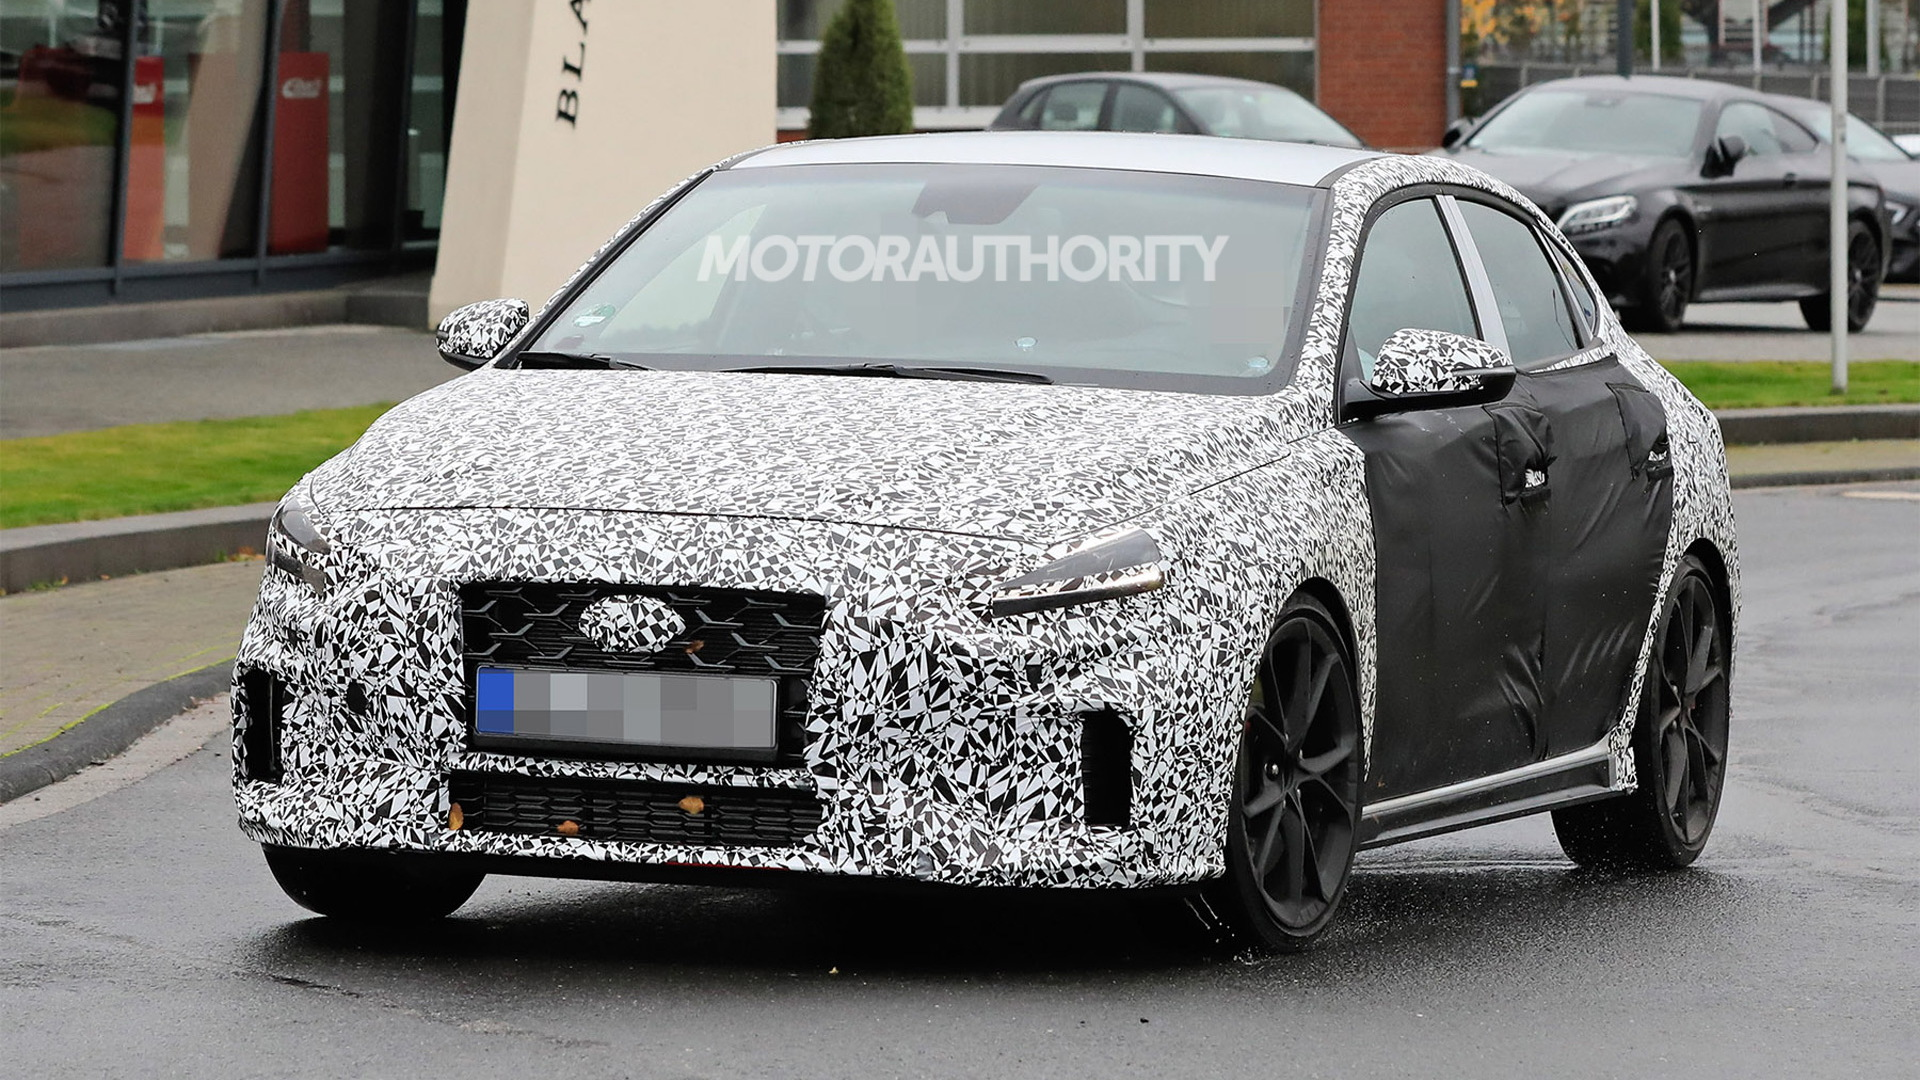 2021 Hyundai i30 Fastback N facelift spy shots - Photo credit: S. Baldauf/SB-Medien